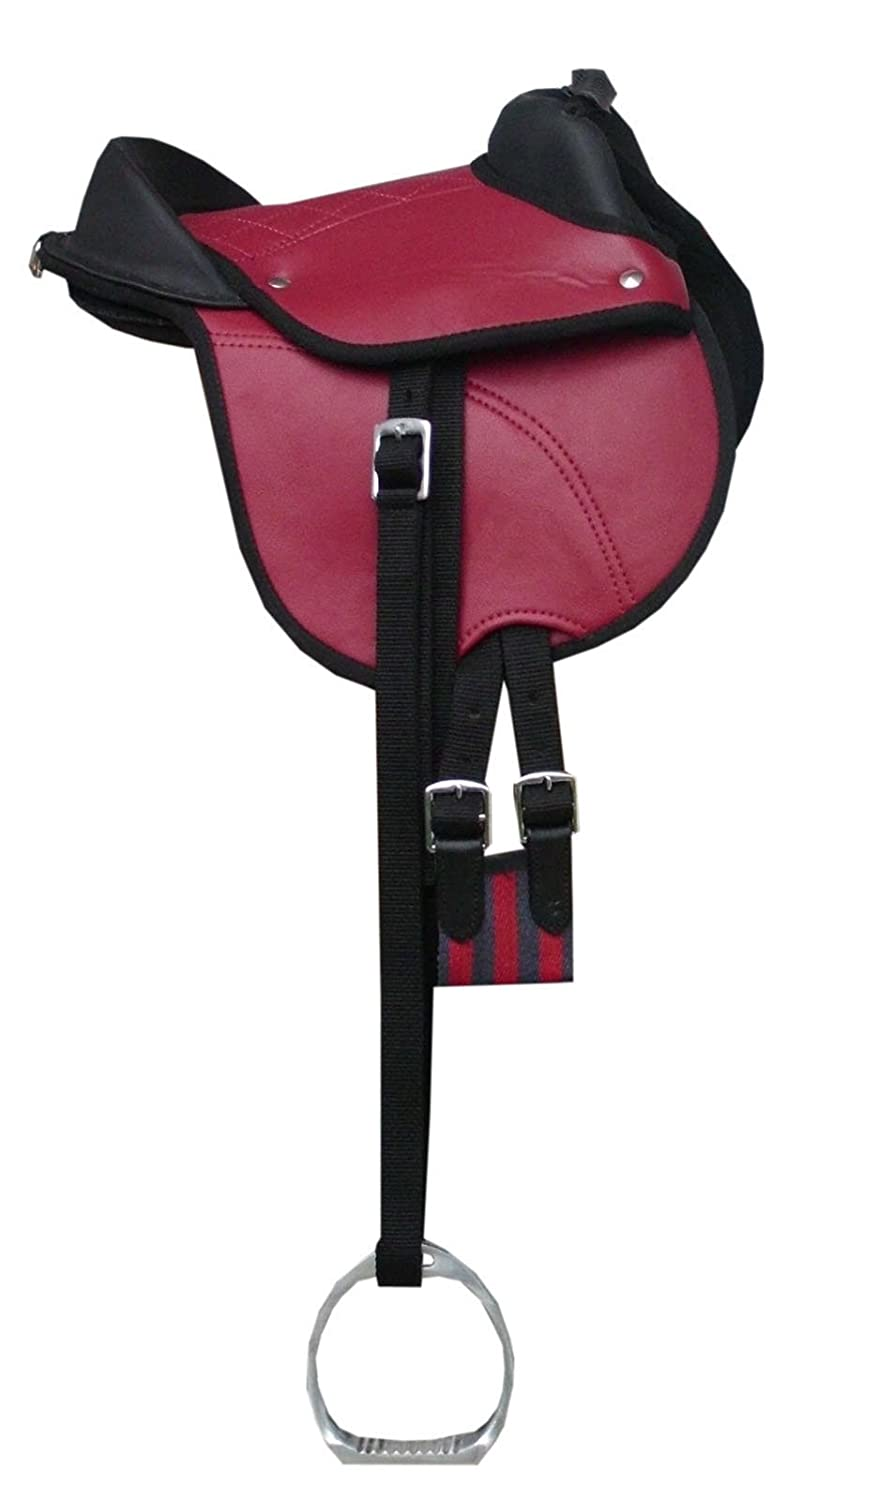 'Pony sella Shetty sella Pony Equitazione cuscino reitki ssen con accessori per il set completo rosso 10 | Pony reitpad anche per legno cavallo geeignetes Sattel Set | Cub Saddle Set Reitsport Amesbichler